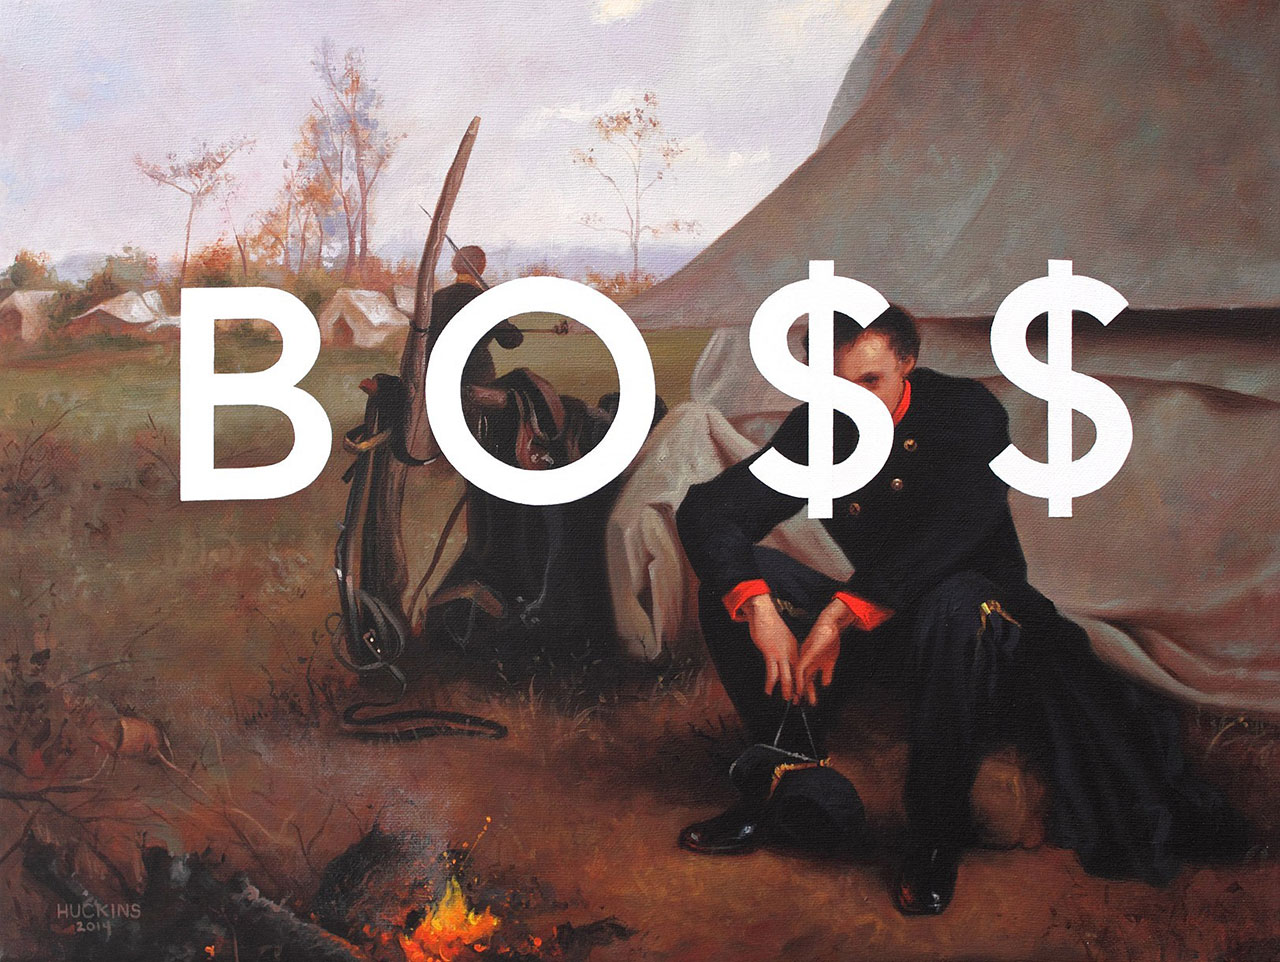 Shawn Huckins, At The Front: Boss, acrylic on canvas, 12 x 16 in (30 x 41 cm)2014. Private collection, San Francisco, CA.